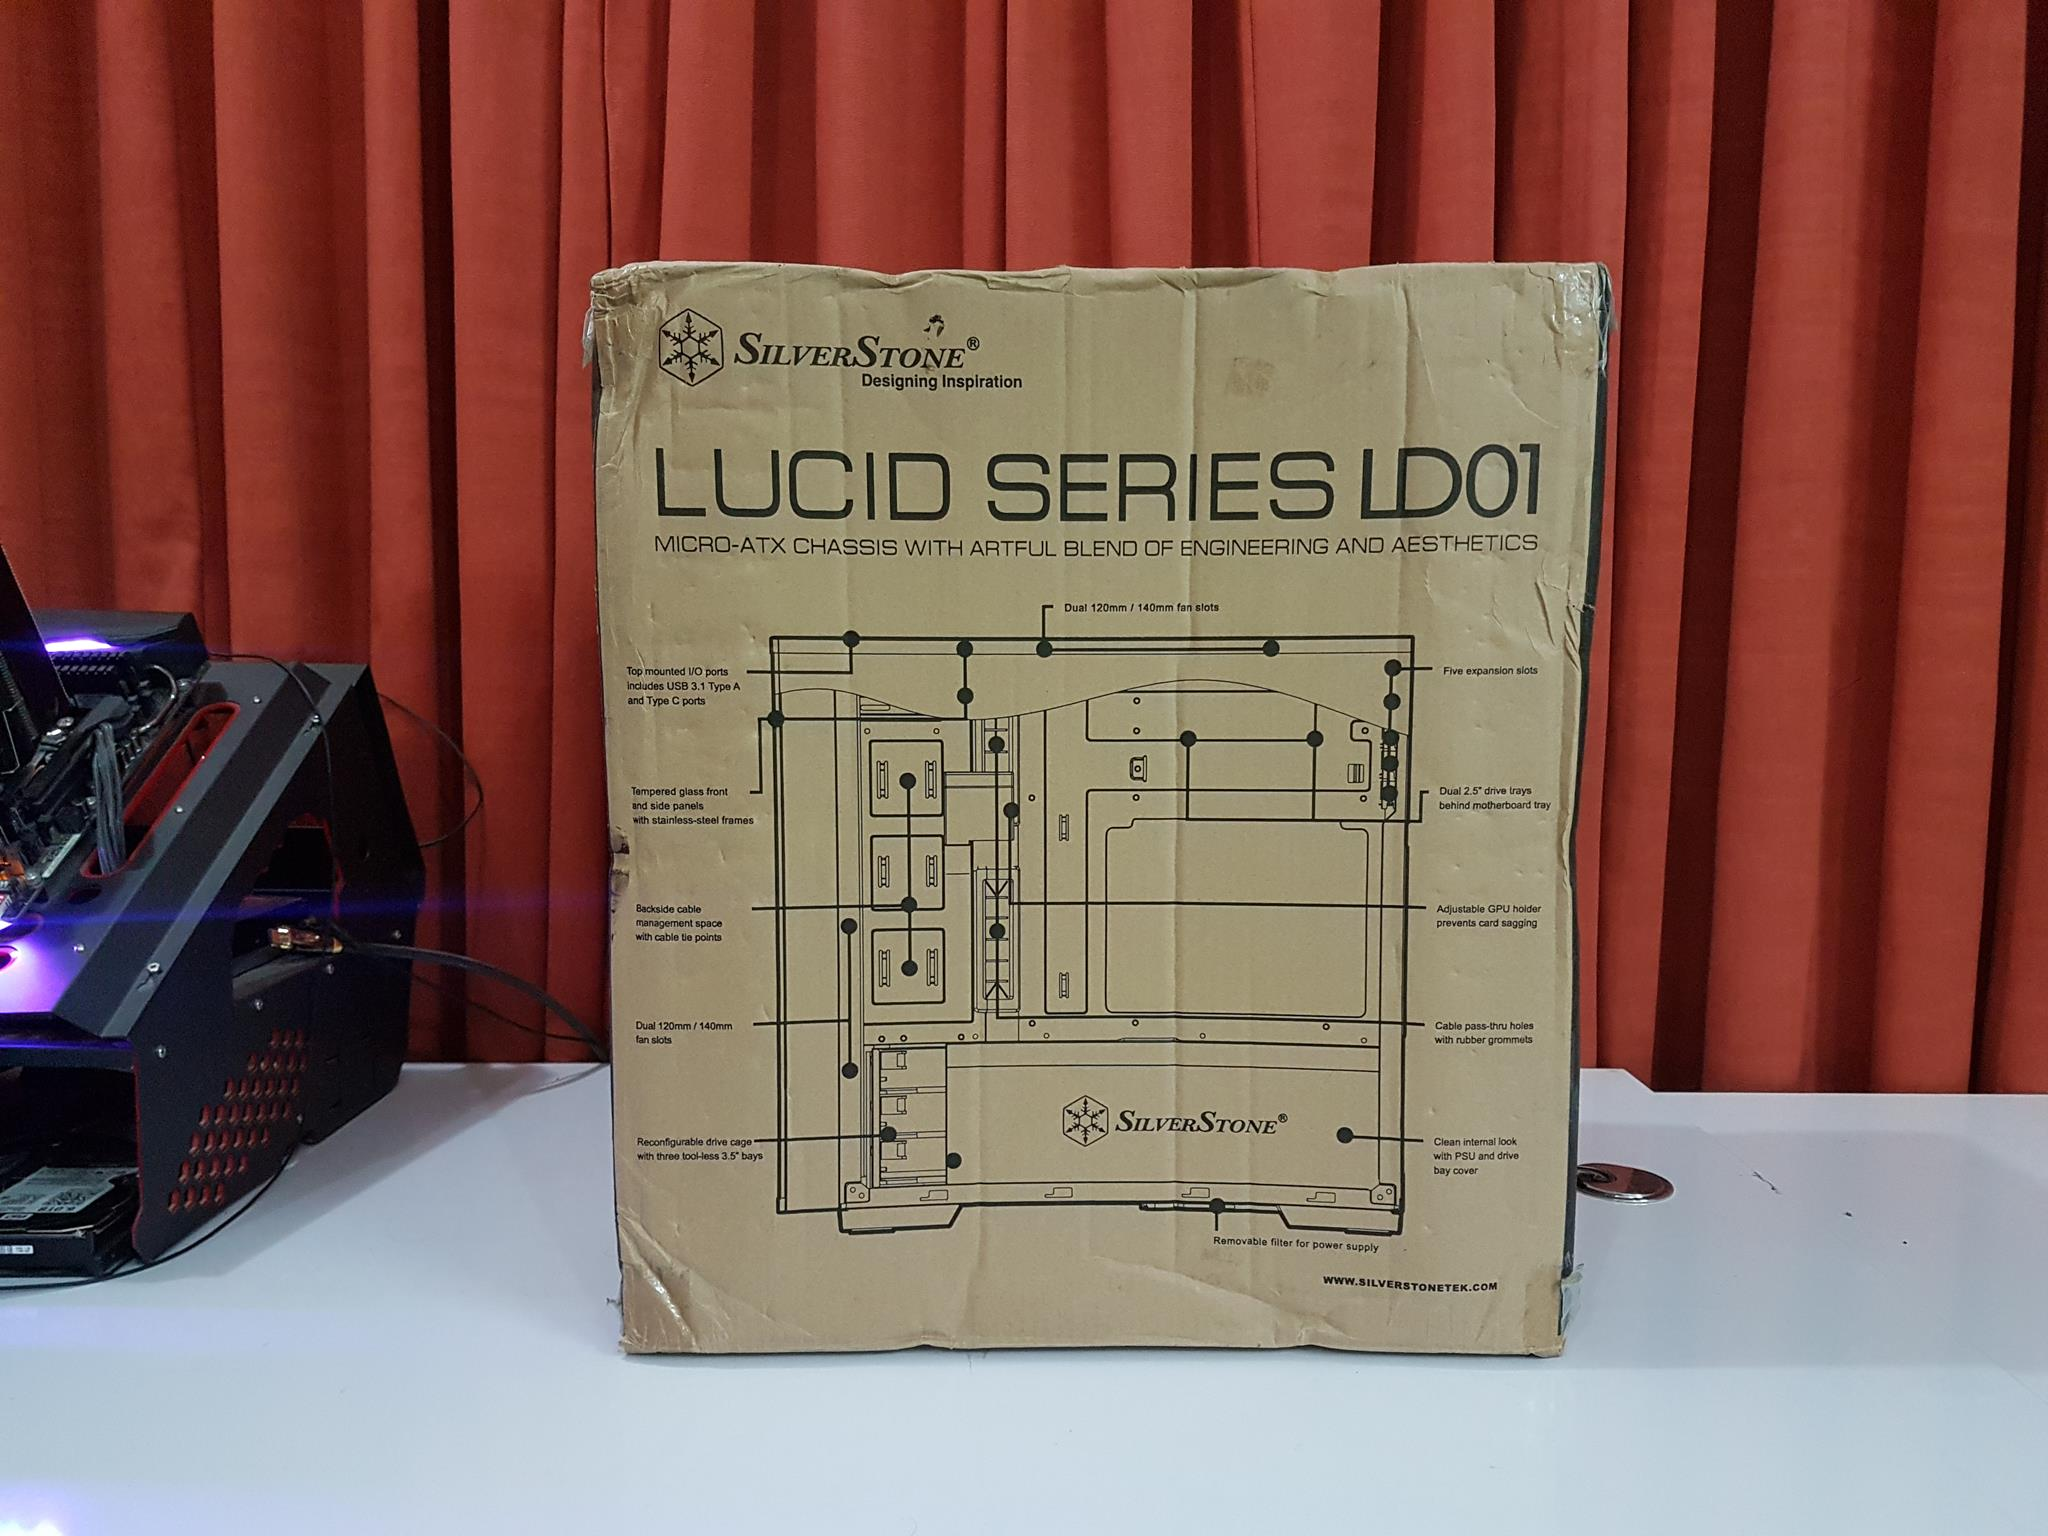 Silverstone Tek Lucid Series Ld01 Microatx Chassis Review Old Engineering Schematics There Is A Block Diagram Of The Printed All Over With Labels Highlighting Corresponding Feature